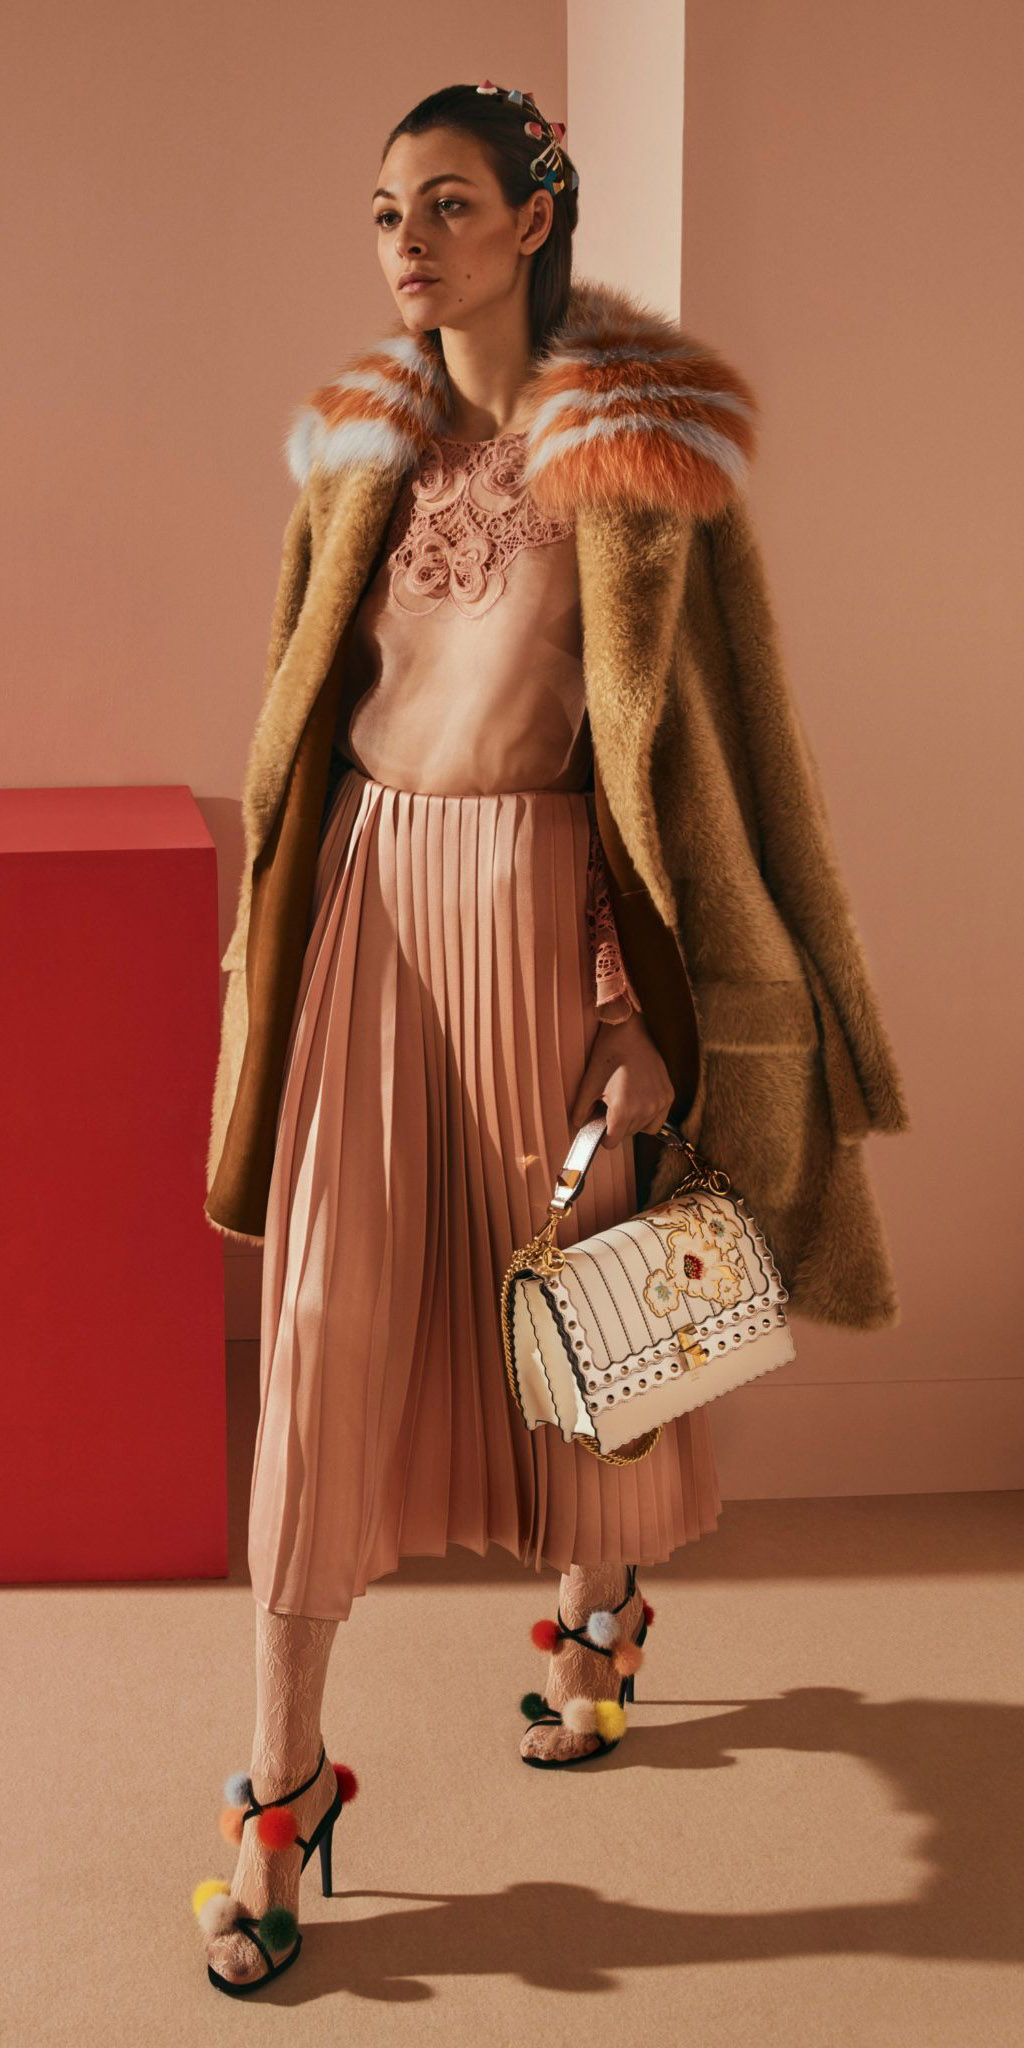 pink-light-midi-skirt-pleated-white-bag-white-tights-black-shoe-sandalh-pink-light-top-tan-jacket-coat-fur-fuzz-fall-winter-hairr-dinner.jpg